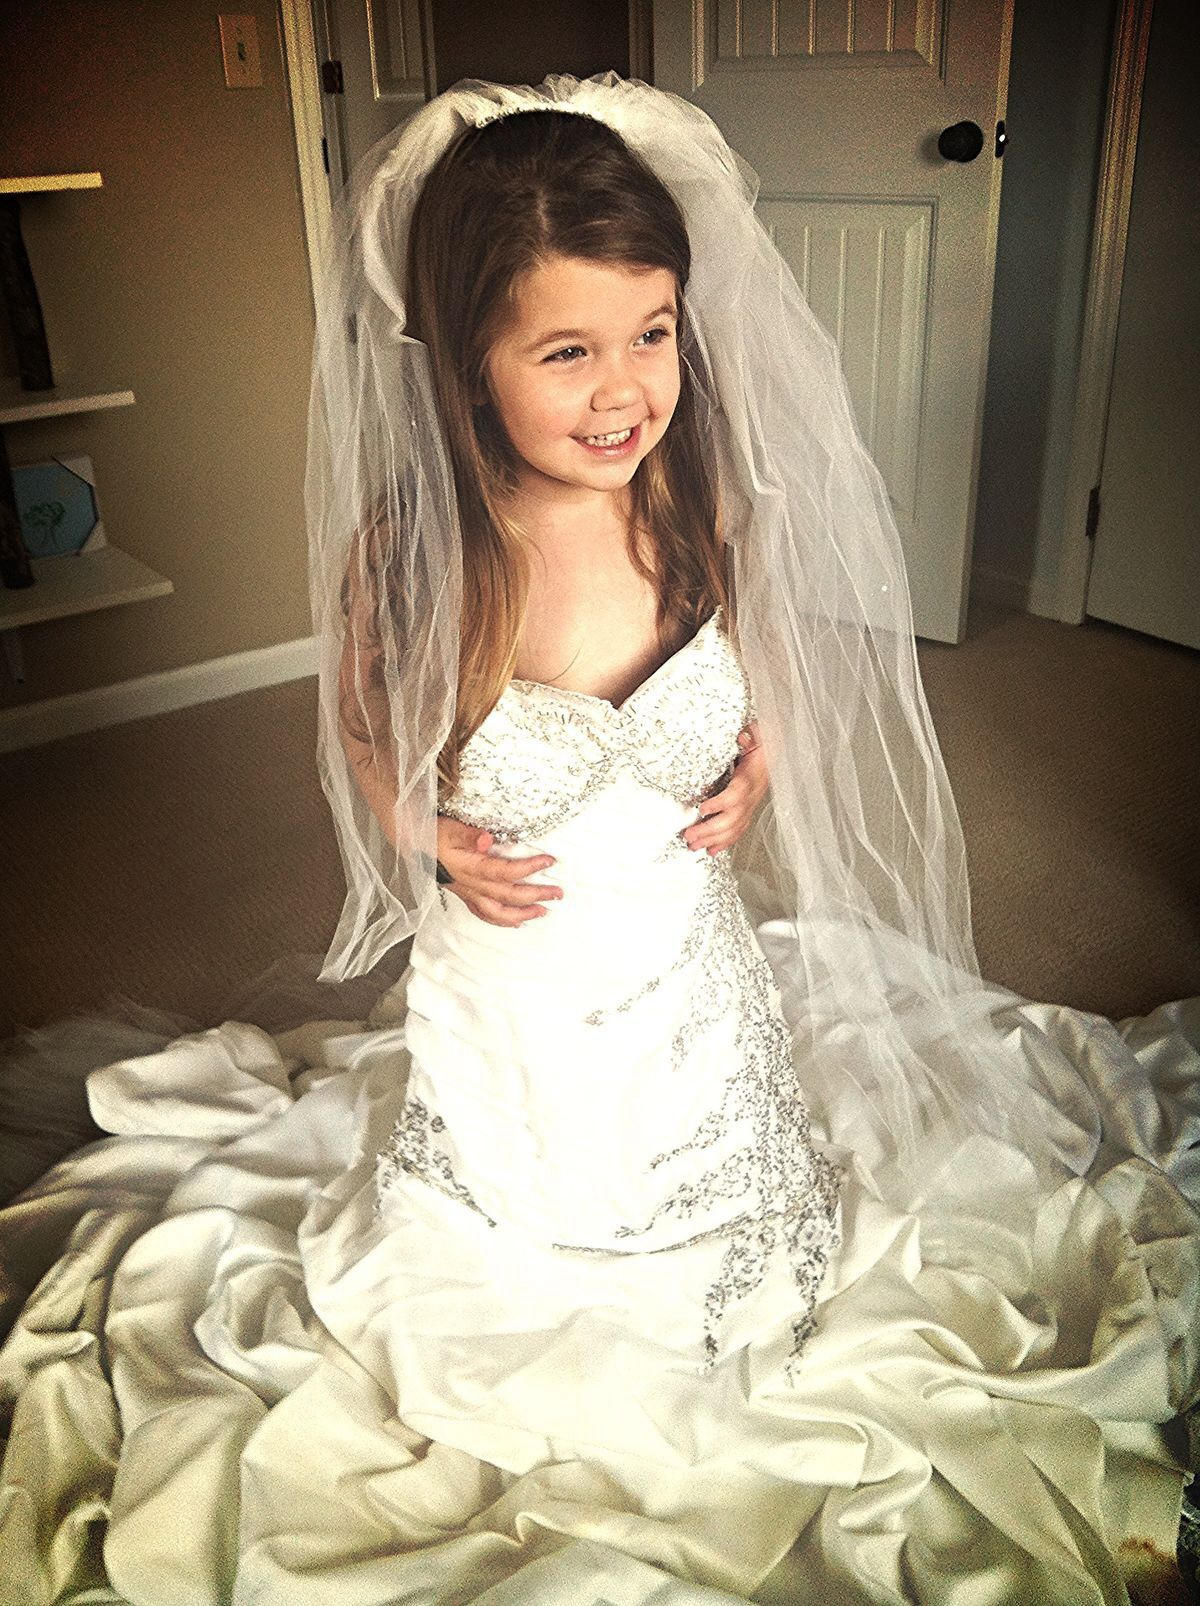 Since my niece will be my flower girl this is a must get pic so